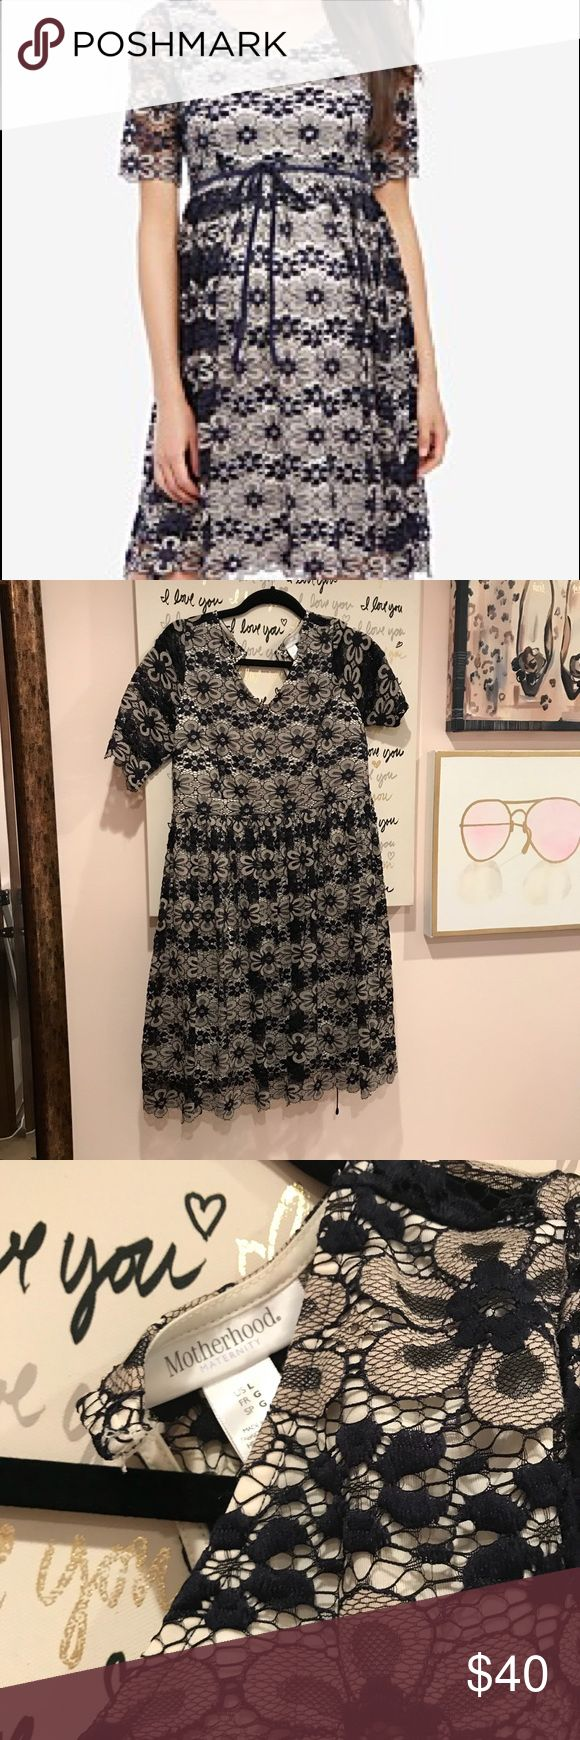 Motherhood Maternity Navy and Cream Lace Dress Brand new!  I bought this to wear to a wedding, but wound up wearing something else.  Never worn.  Tags removed. 17 inches pit to pit; waist is 17 inches lying flat; 24 inches waist to hem Motherhood Maternity Dresses